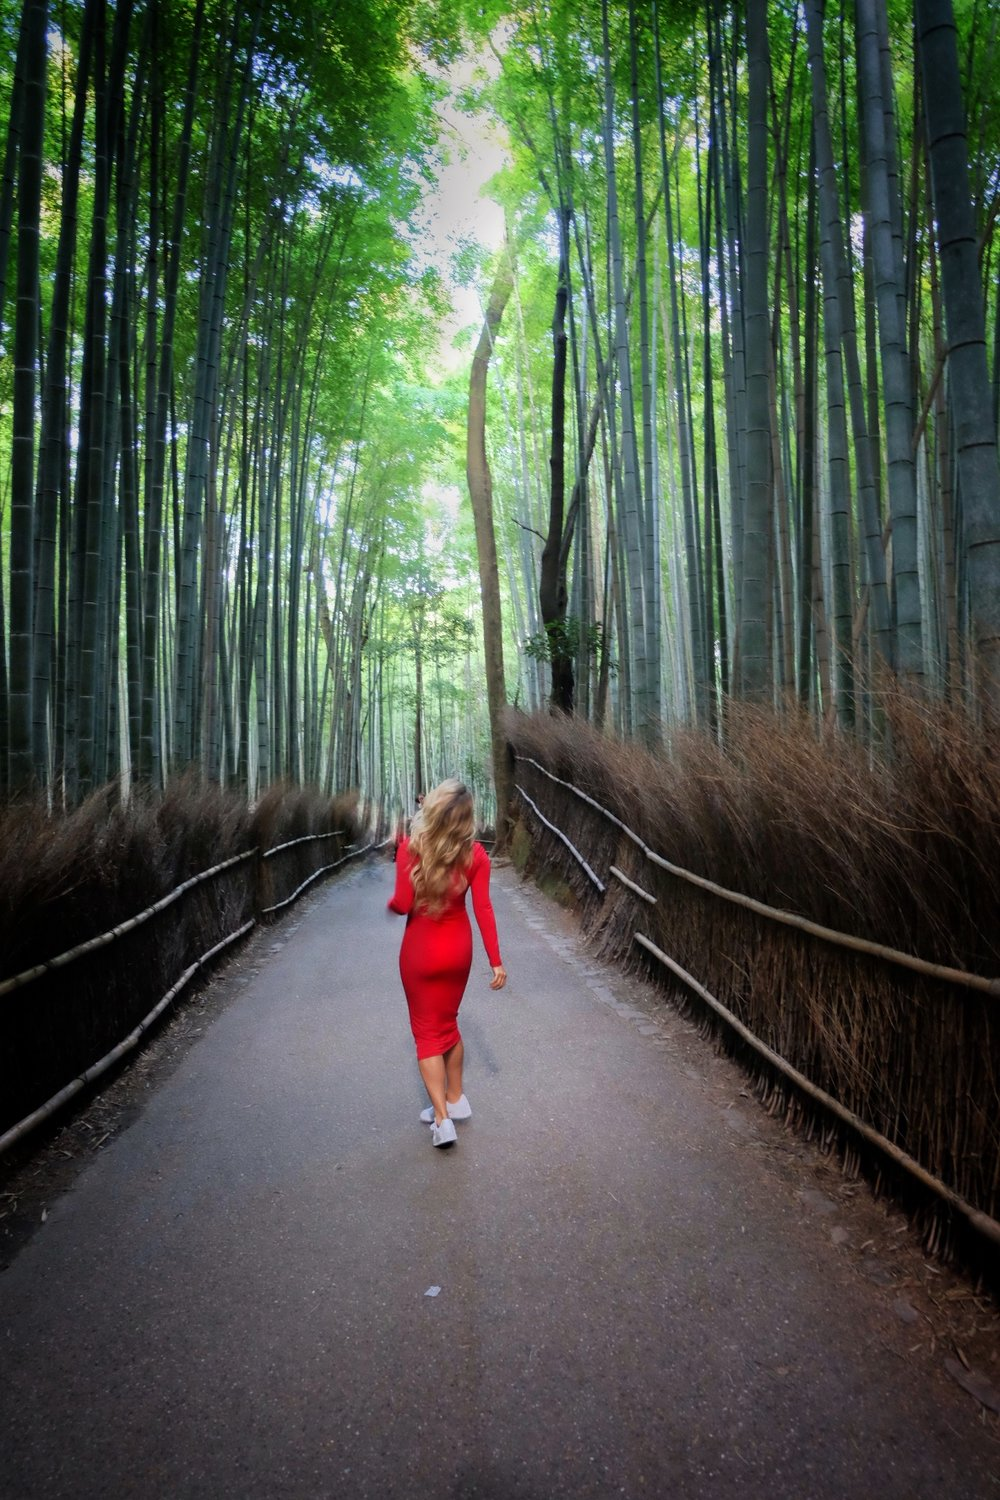 The Bamboo Grove in Kyoto